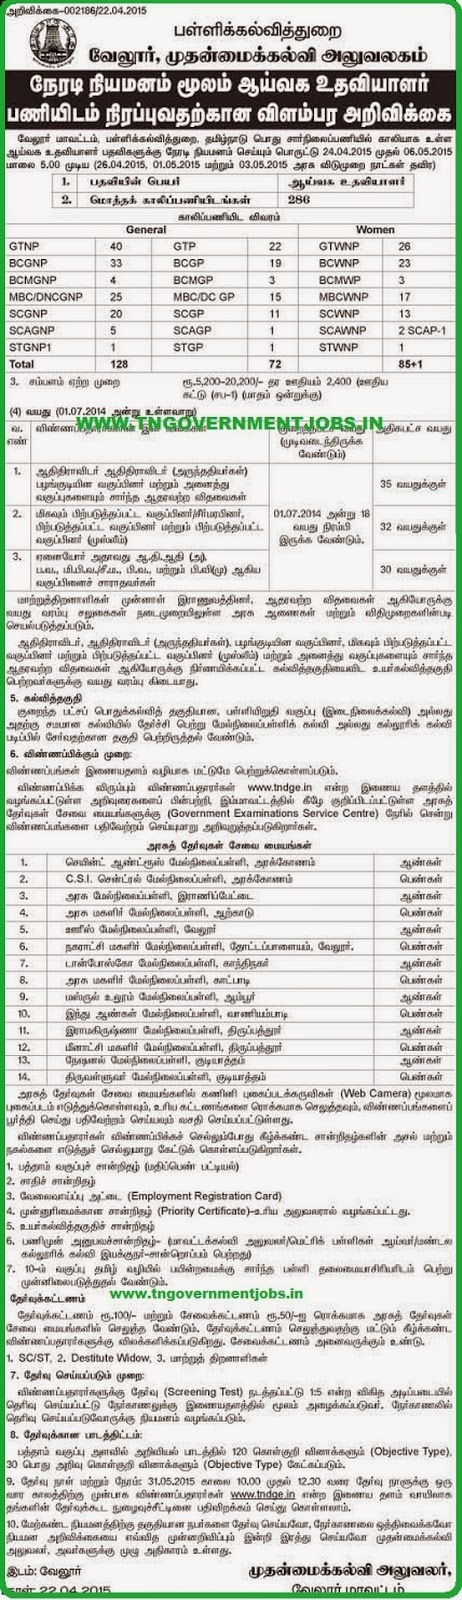 Vellore CEO Lab Asst Recruitments 2015 (www.tngovernmentjobs.in)